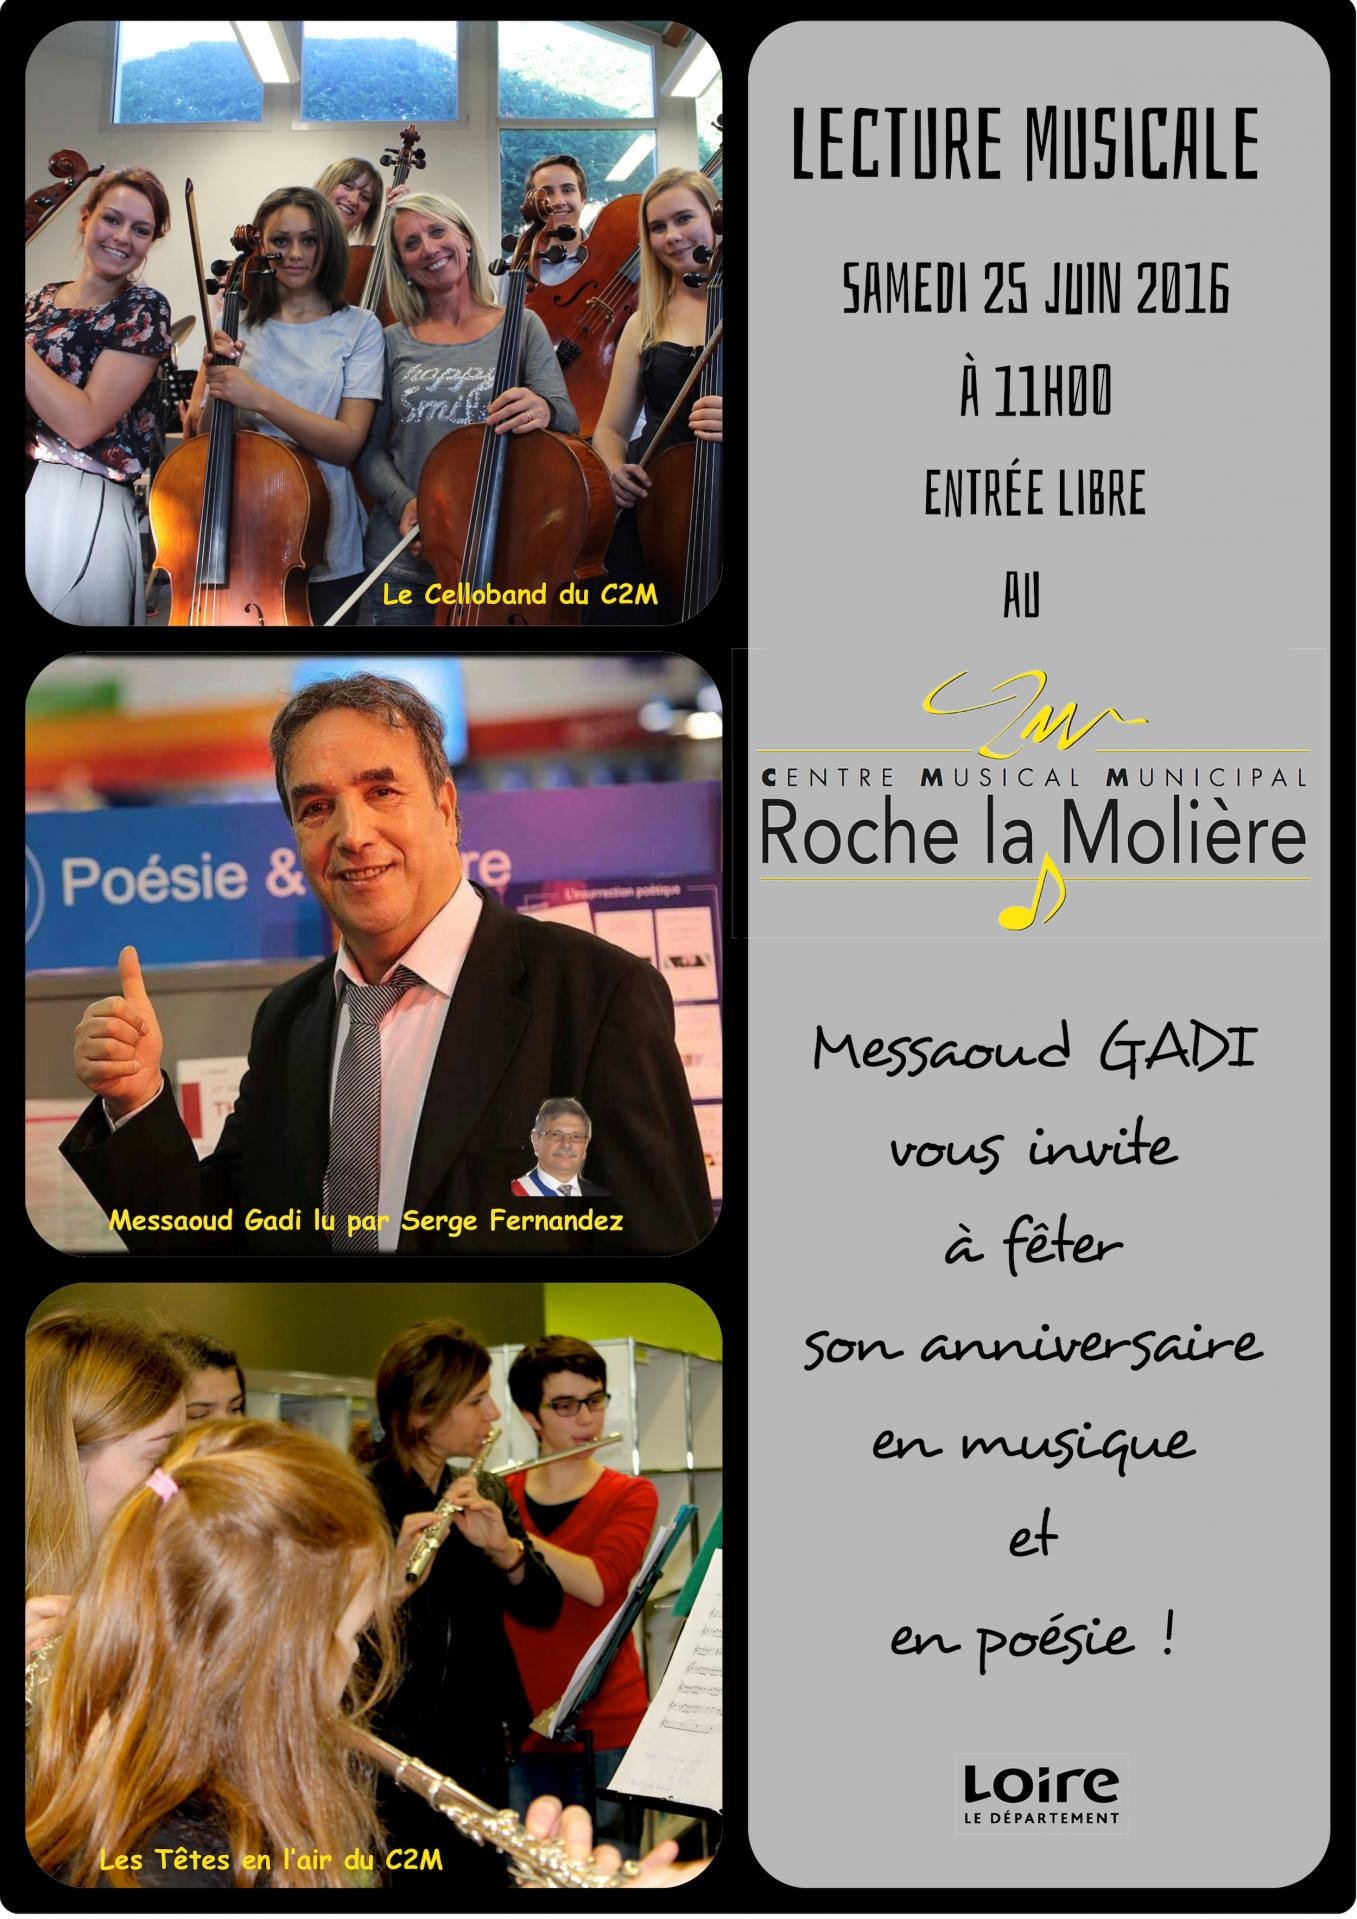 Lecture musicale 25 juin